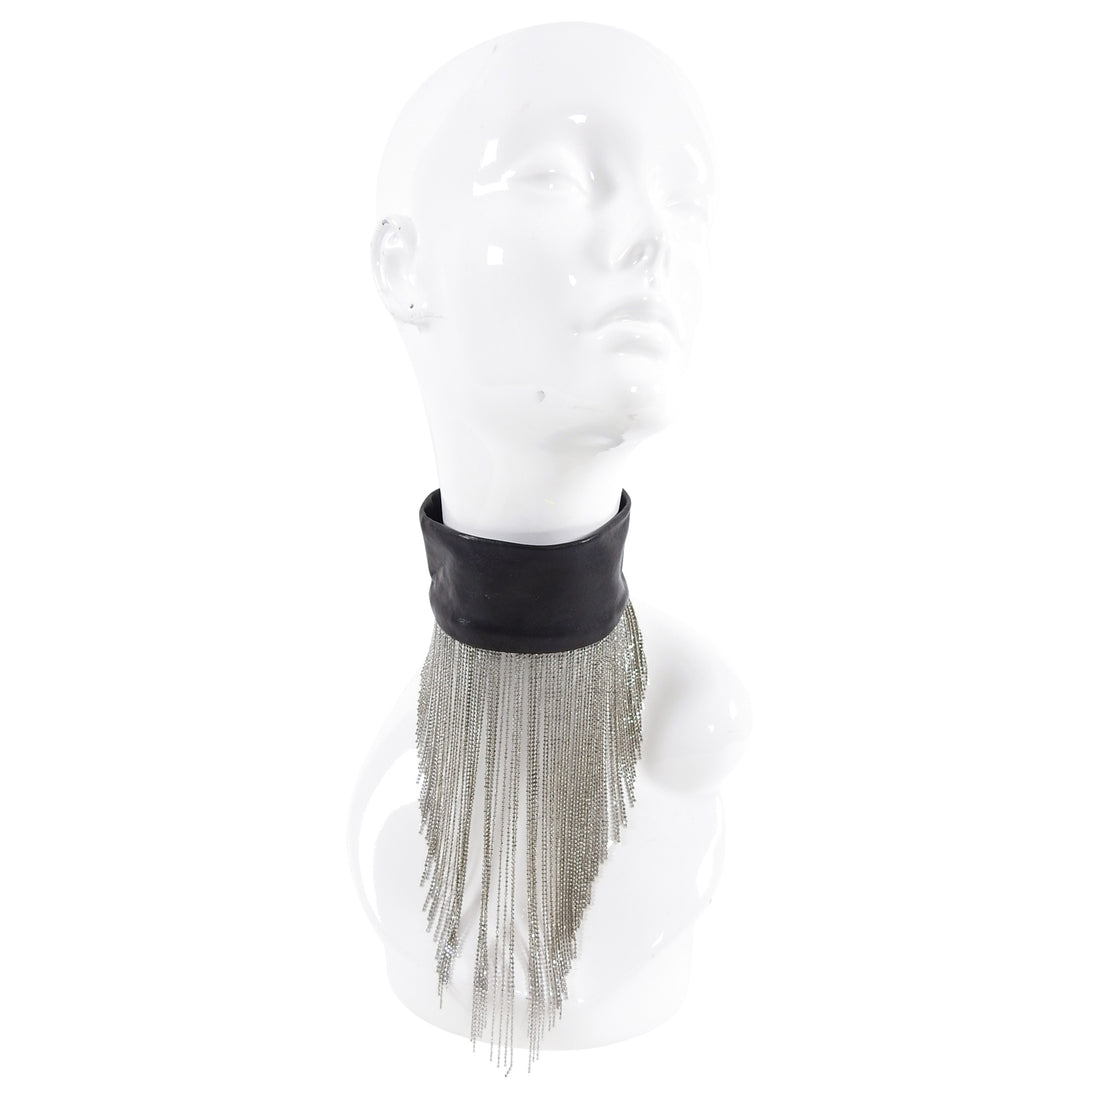 Maison Margiela Black Leather Metal Fringe Choker Necklace - XS